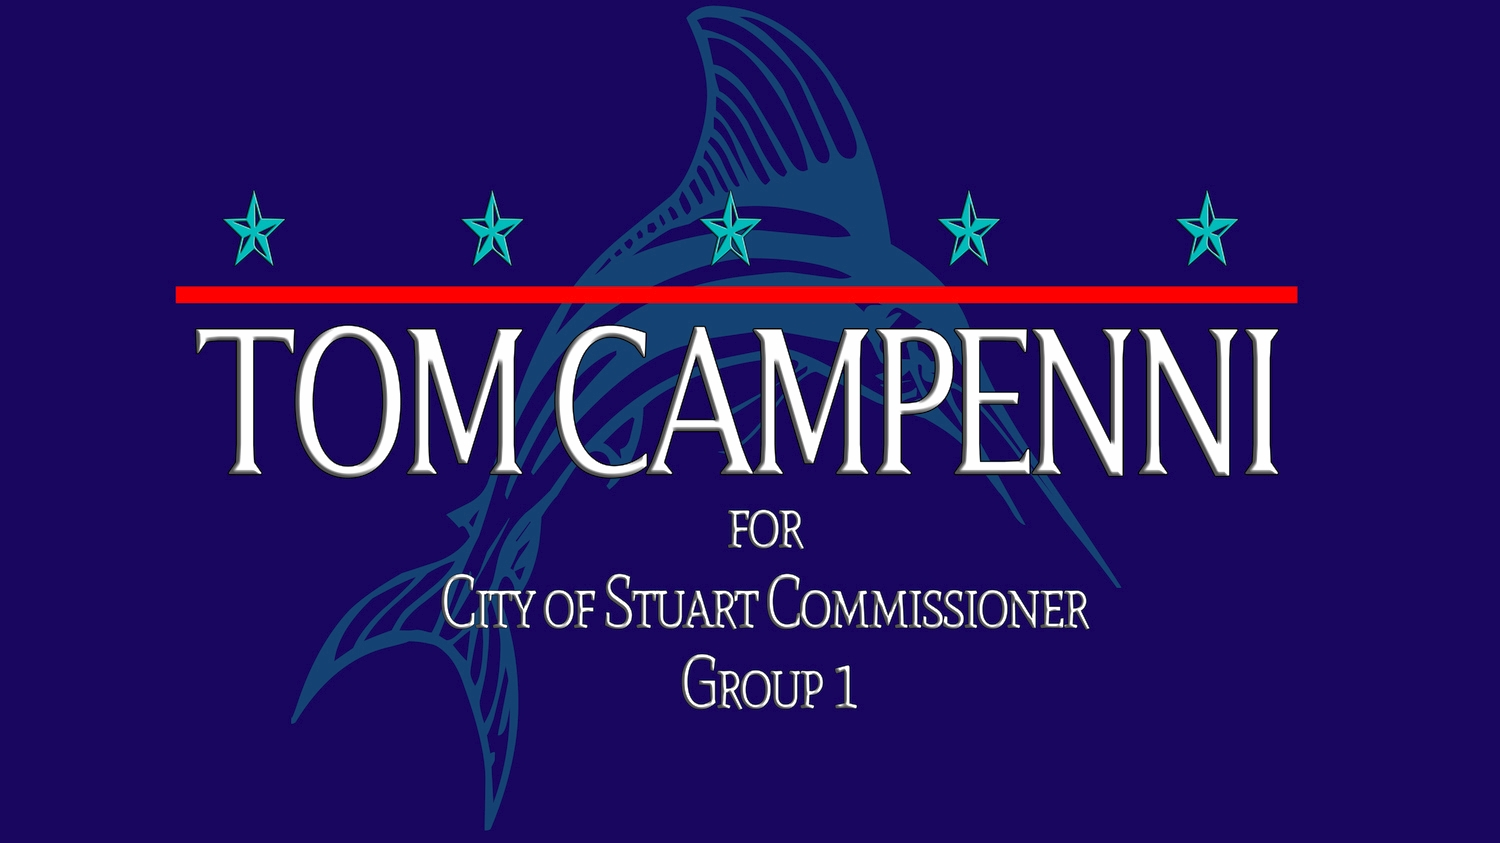 Tom Campenni for Stuart City Commission, Group 1